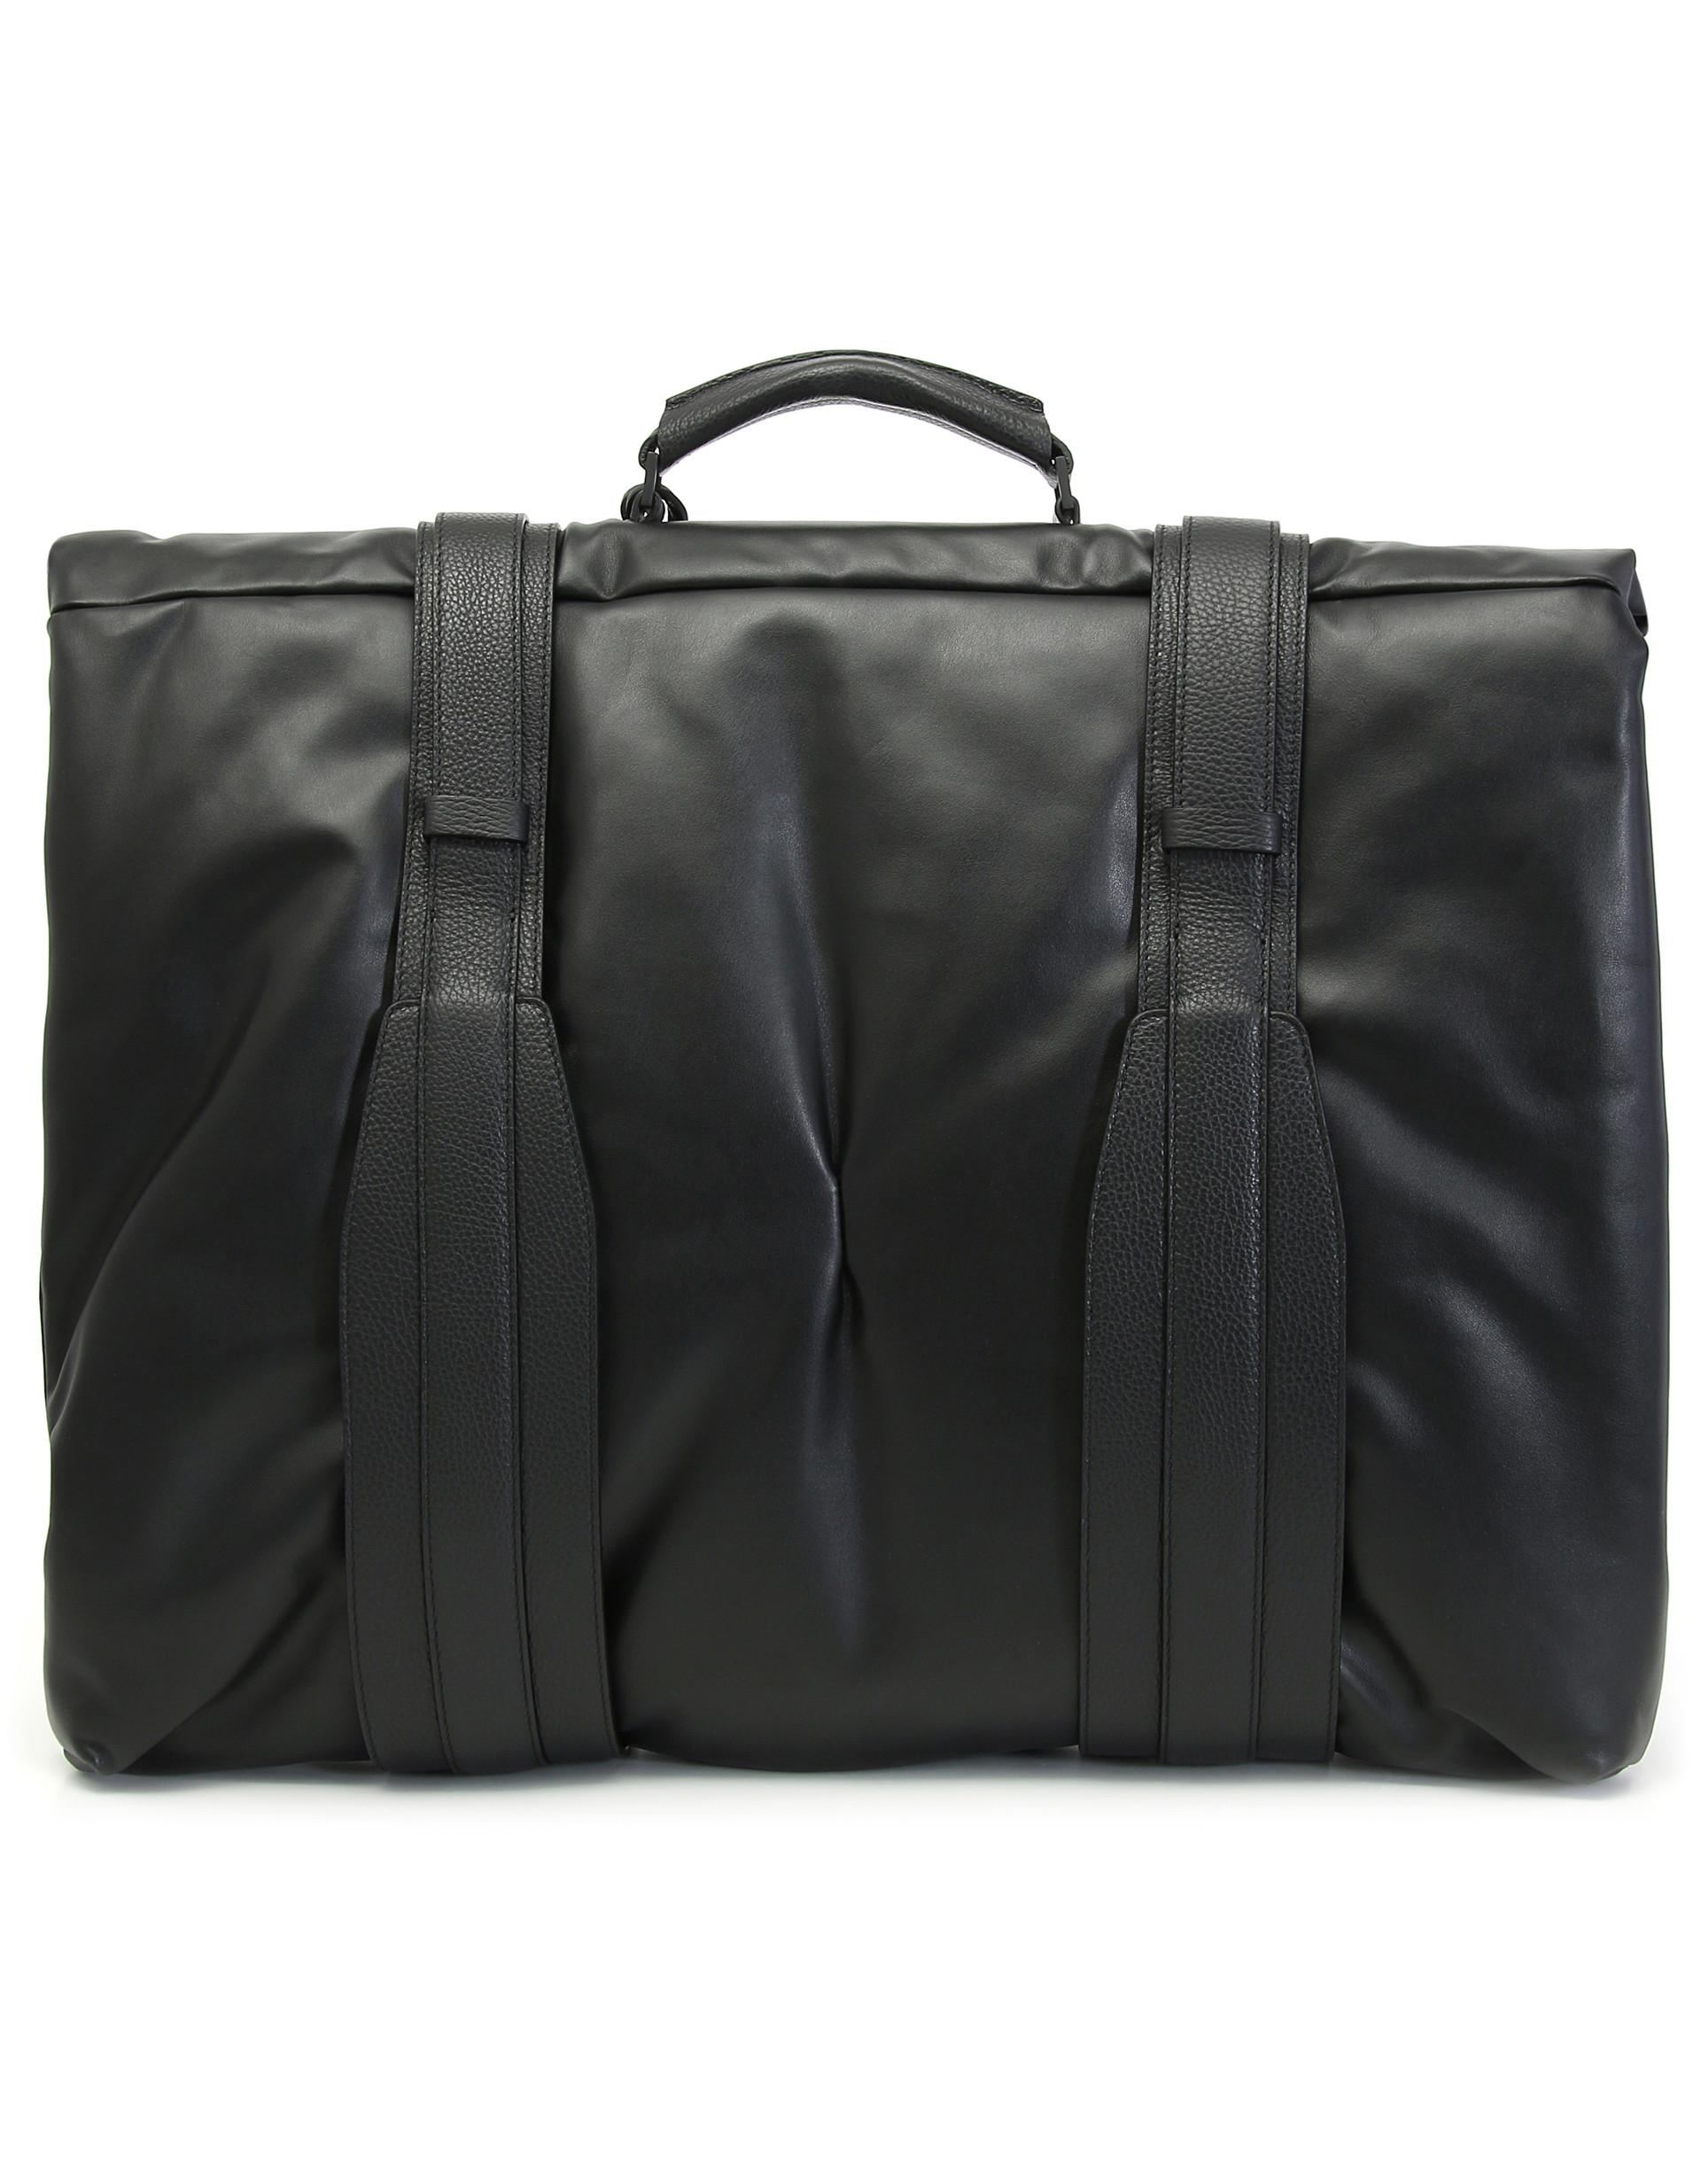 26f6da35d3 Lyst - Canali Black Textured Calfskin Leather Garment Bag in Black for Men